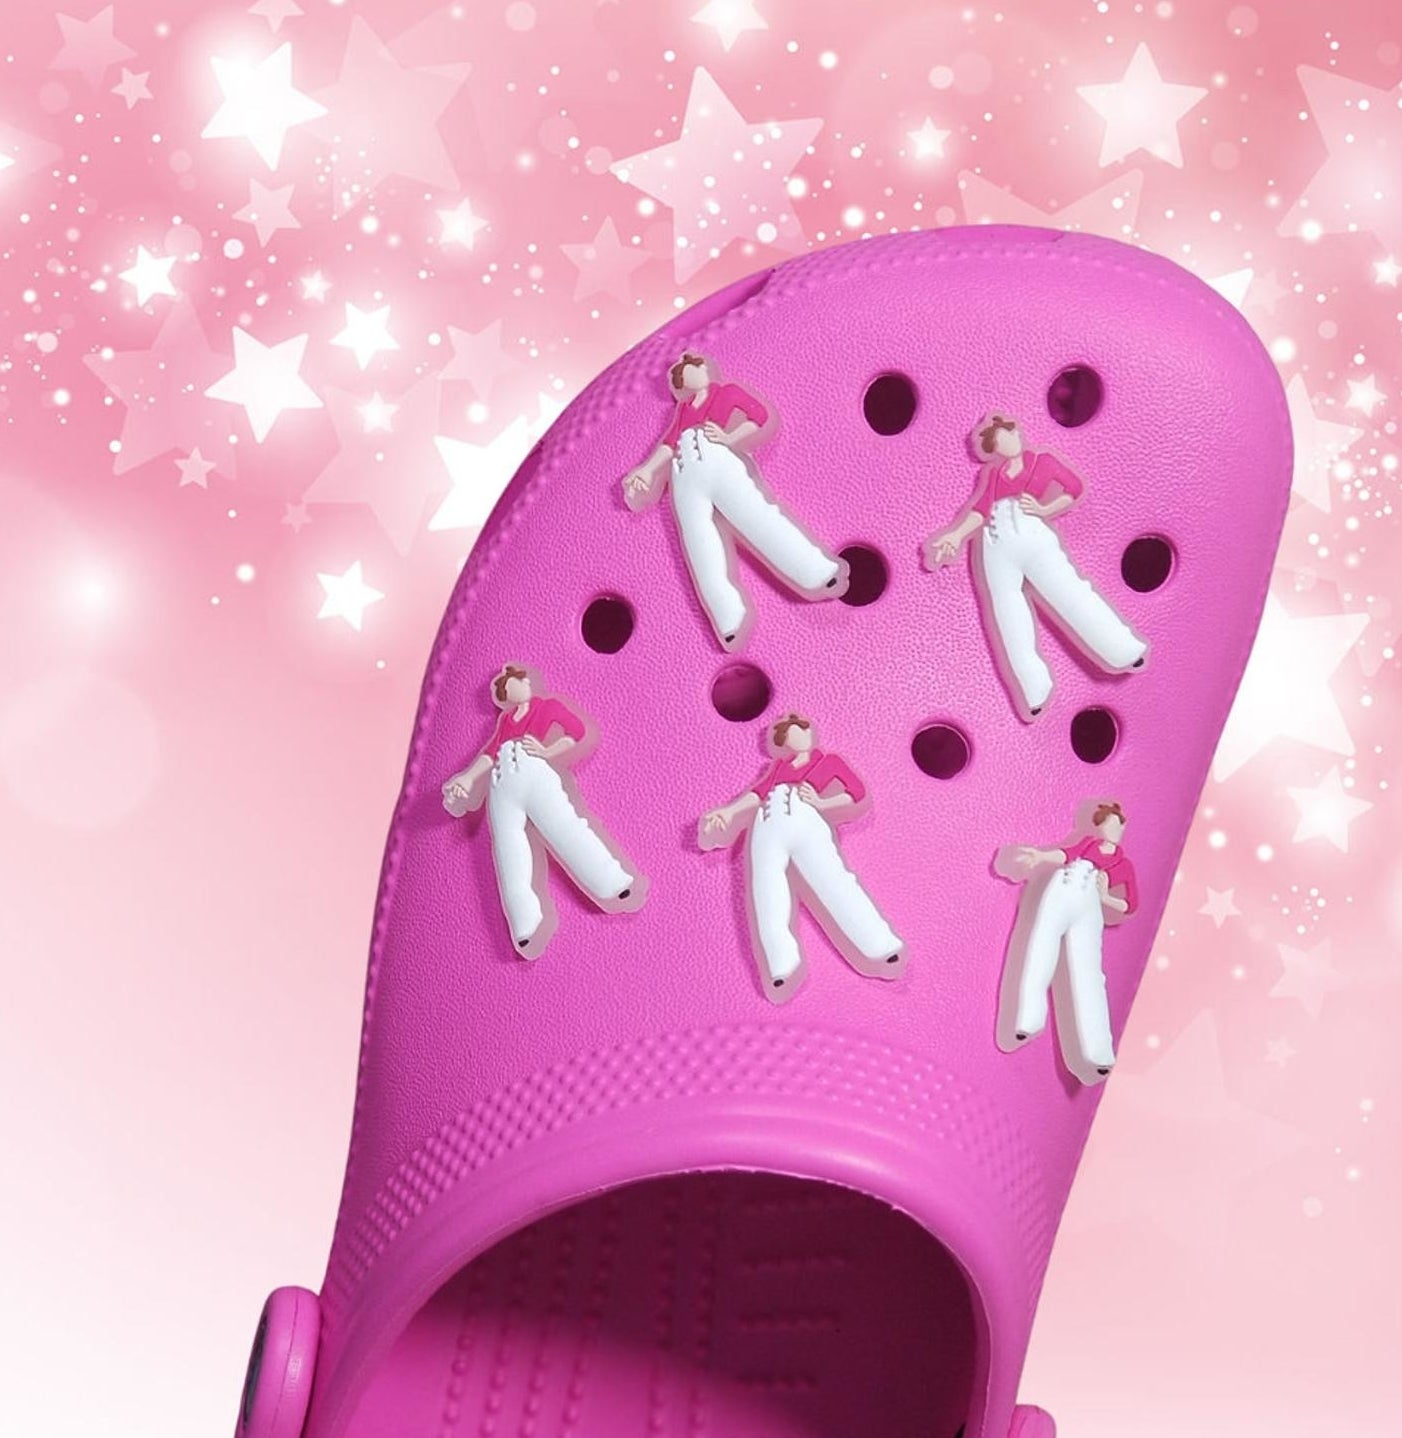 harry styles charms on croc shoe